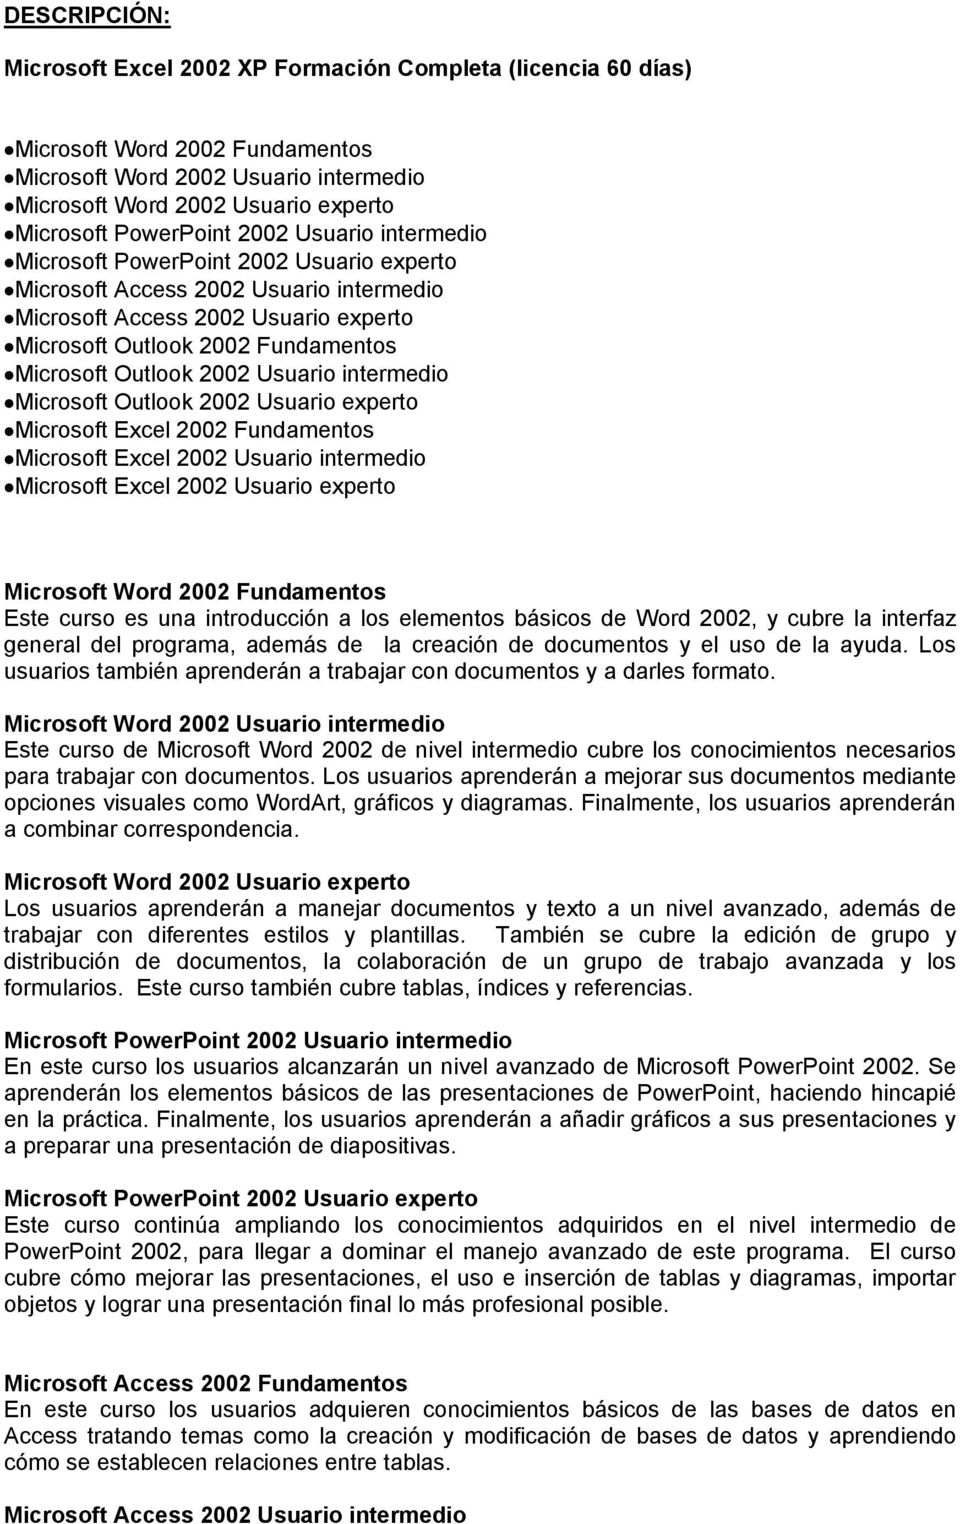 Microsoft Outlook 2002 Usuario intermedio Microsoft Outlook 2002 Usuario experto Microsoft Excel 2002 Fundamentos Microsoft Excel 2002 Usuario intermedio Microsoft Excel 2002 Usuario experto